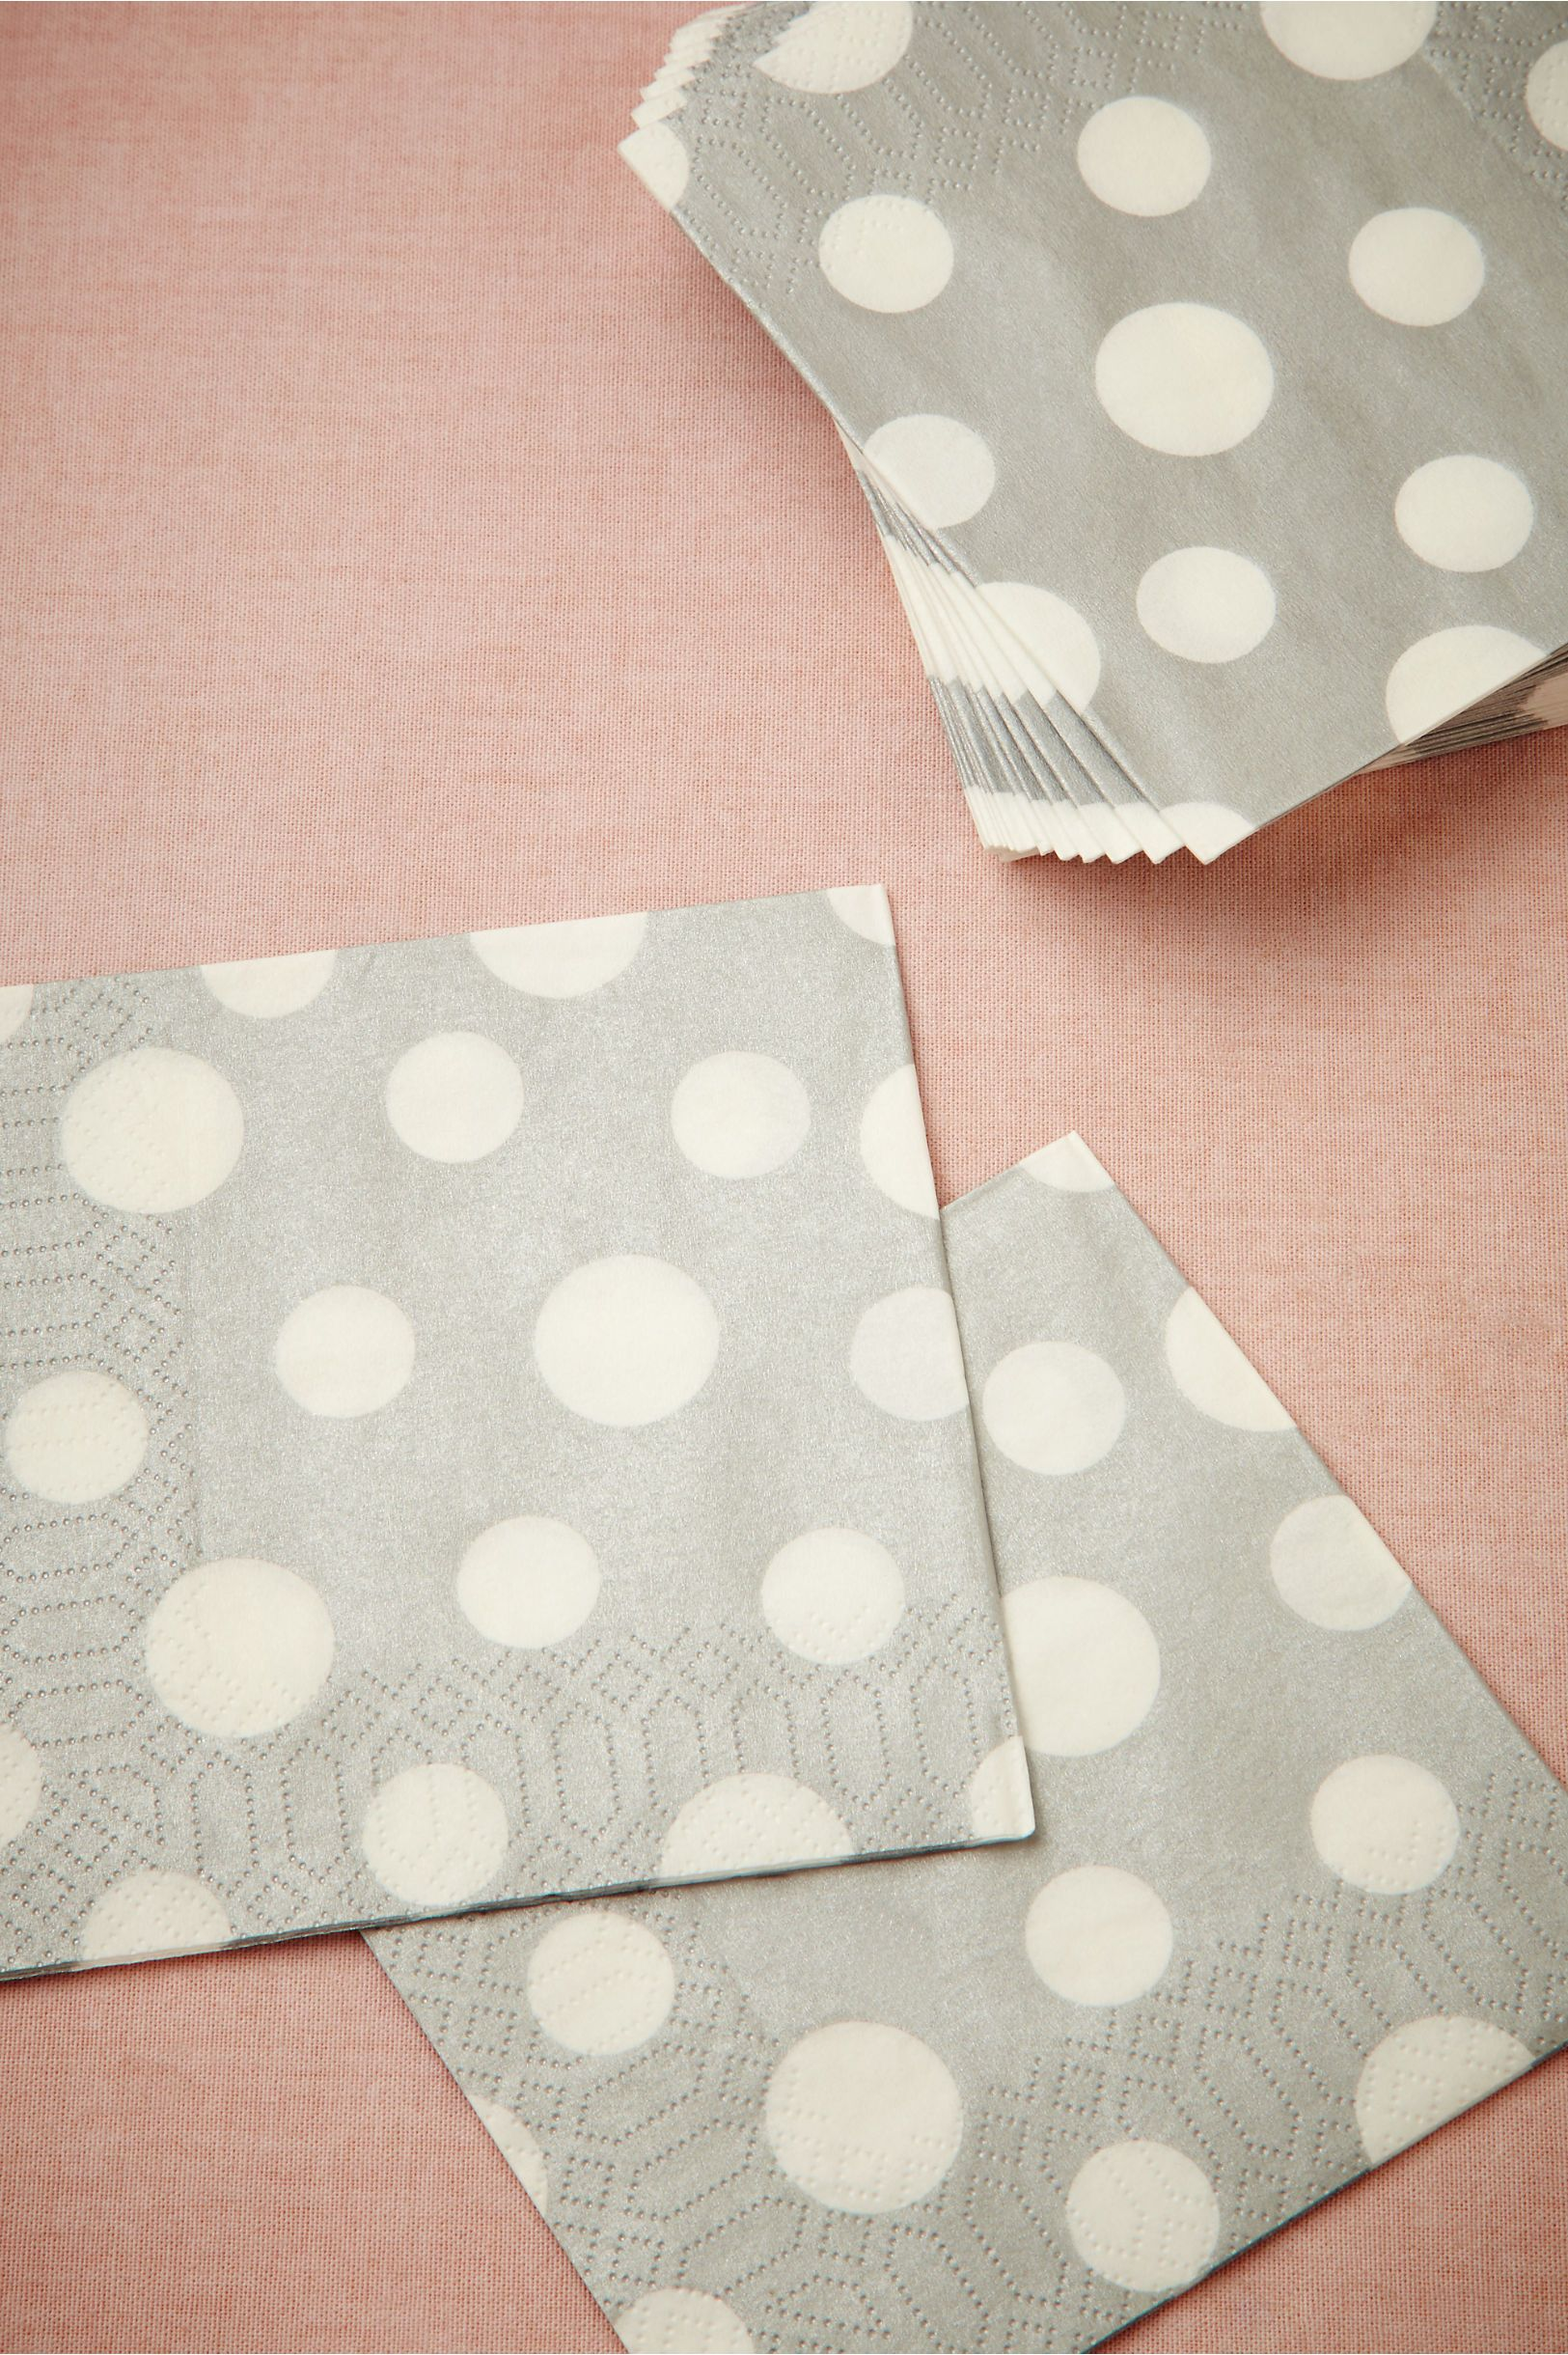 Full Circle Cocktail Napkins from BHLDN